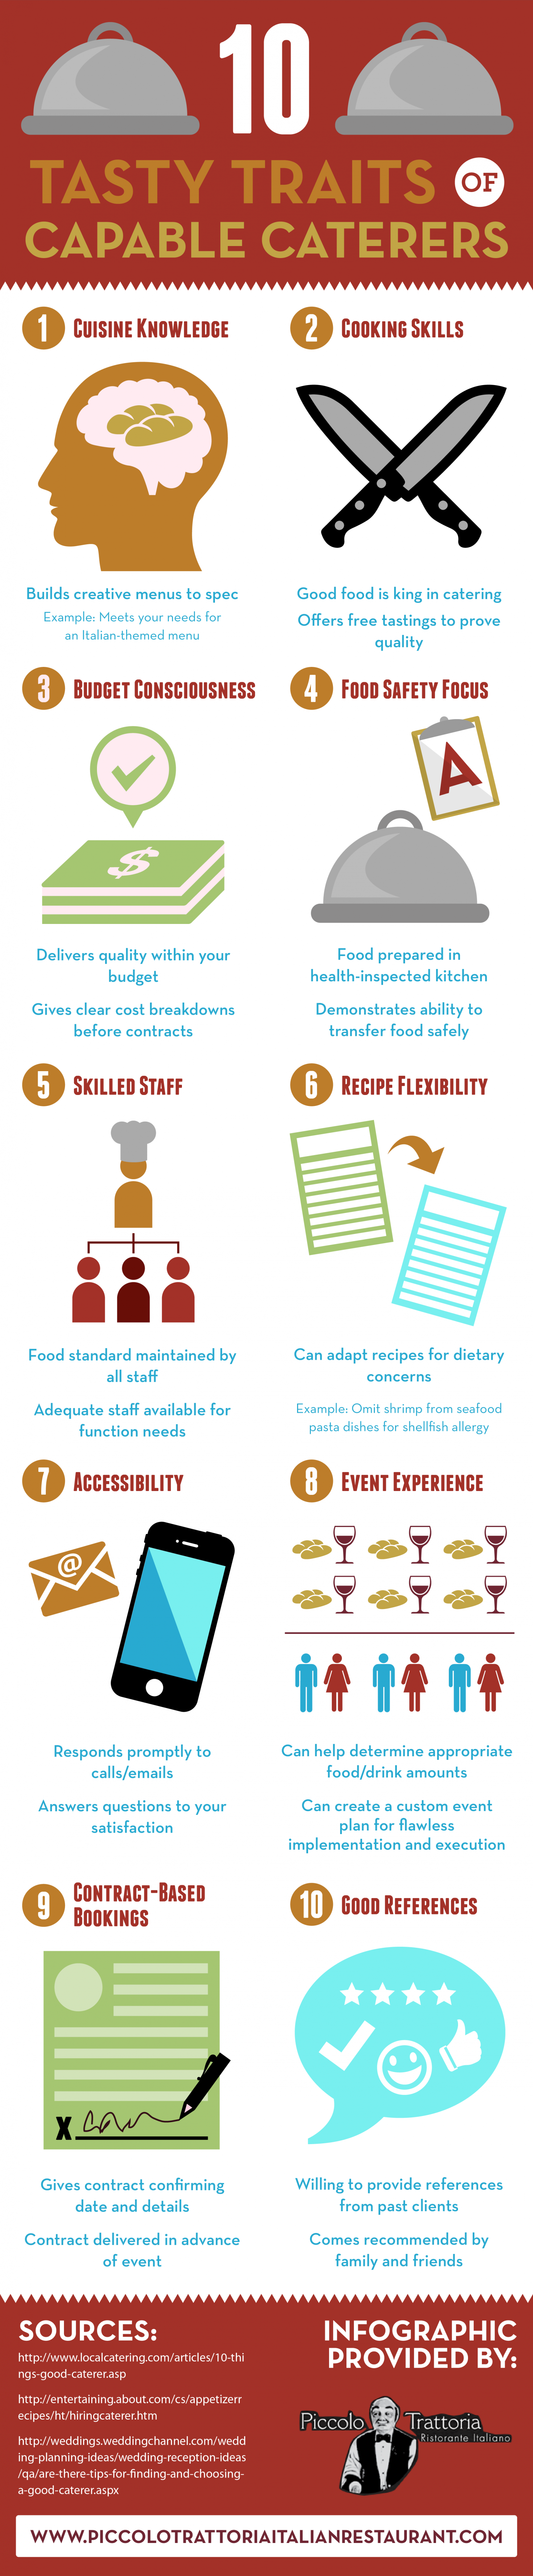 10 Tasty Traits of Capable Caterers Infographic